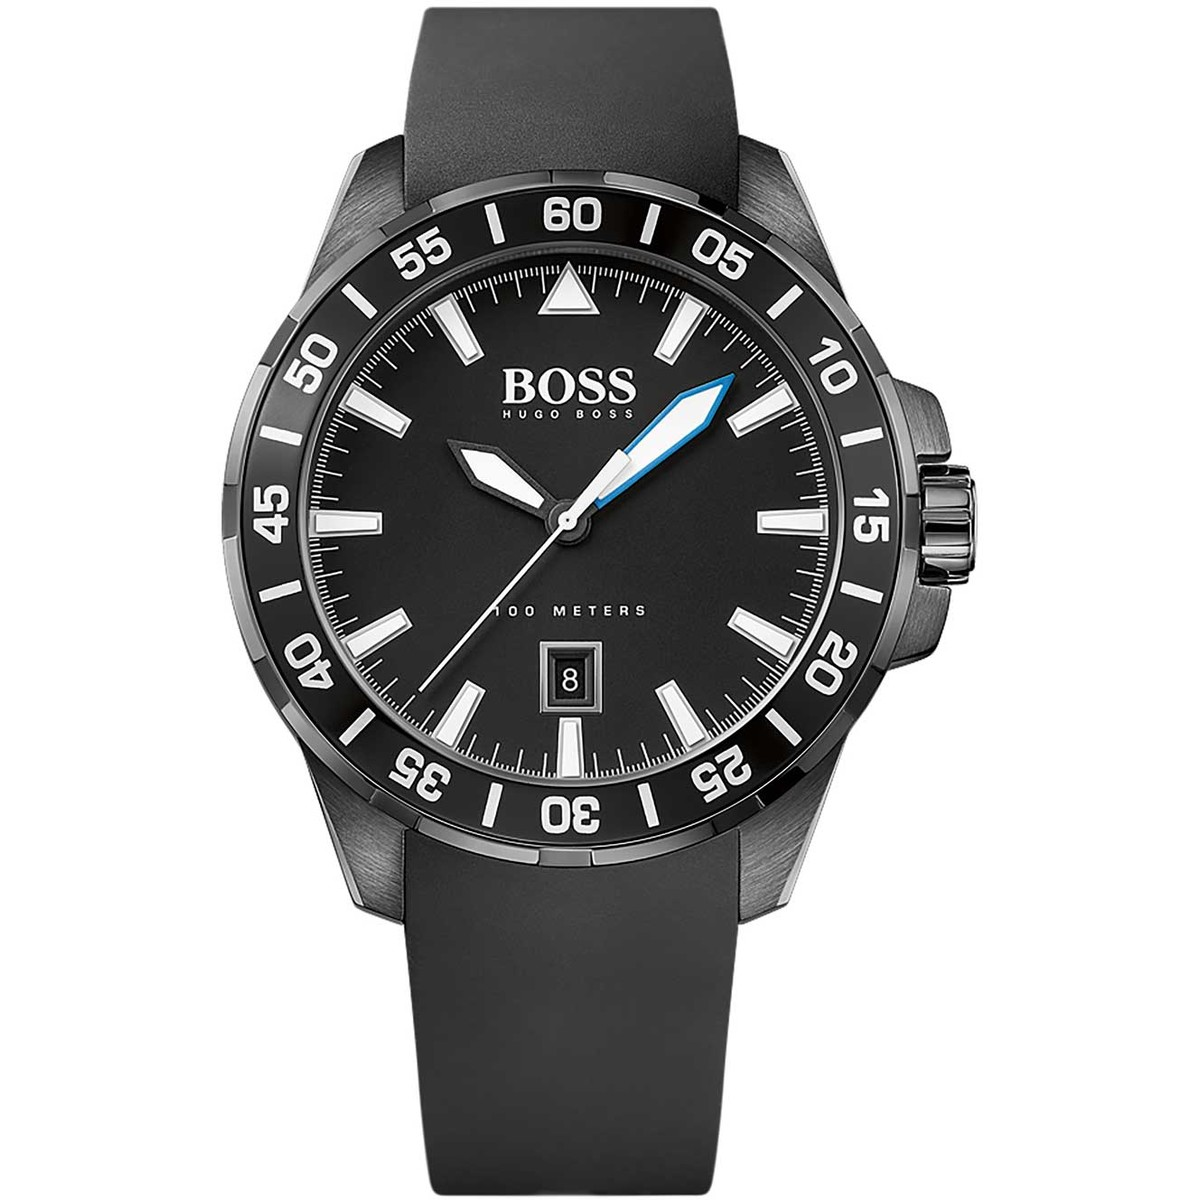 Ceas barbatesc Hugo Boss 1513229 de mana original